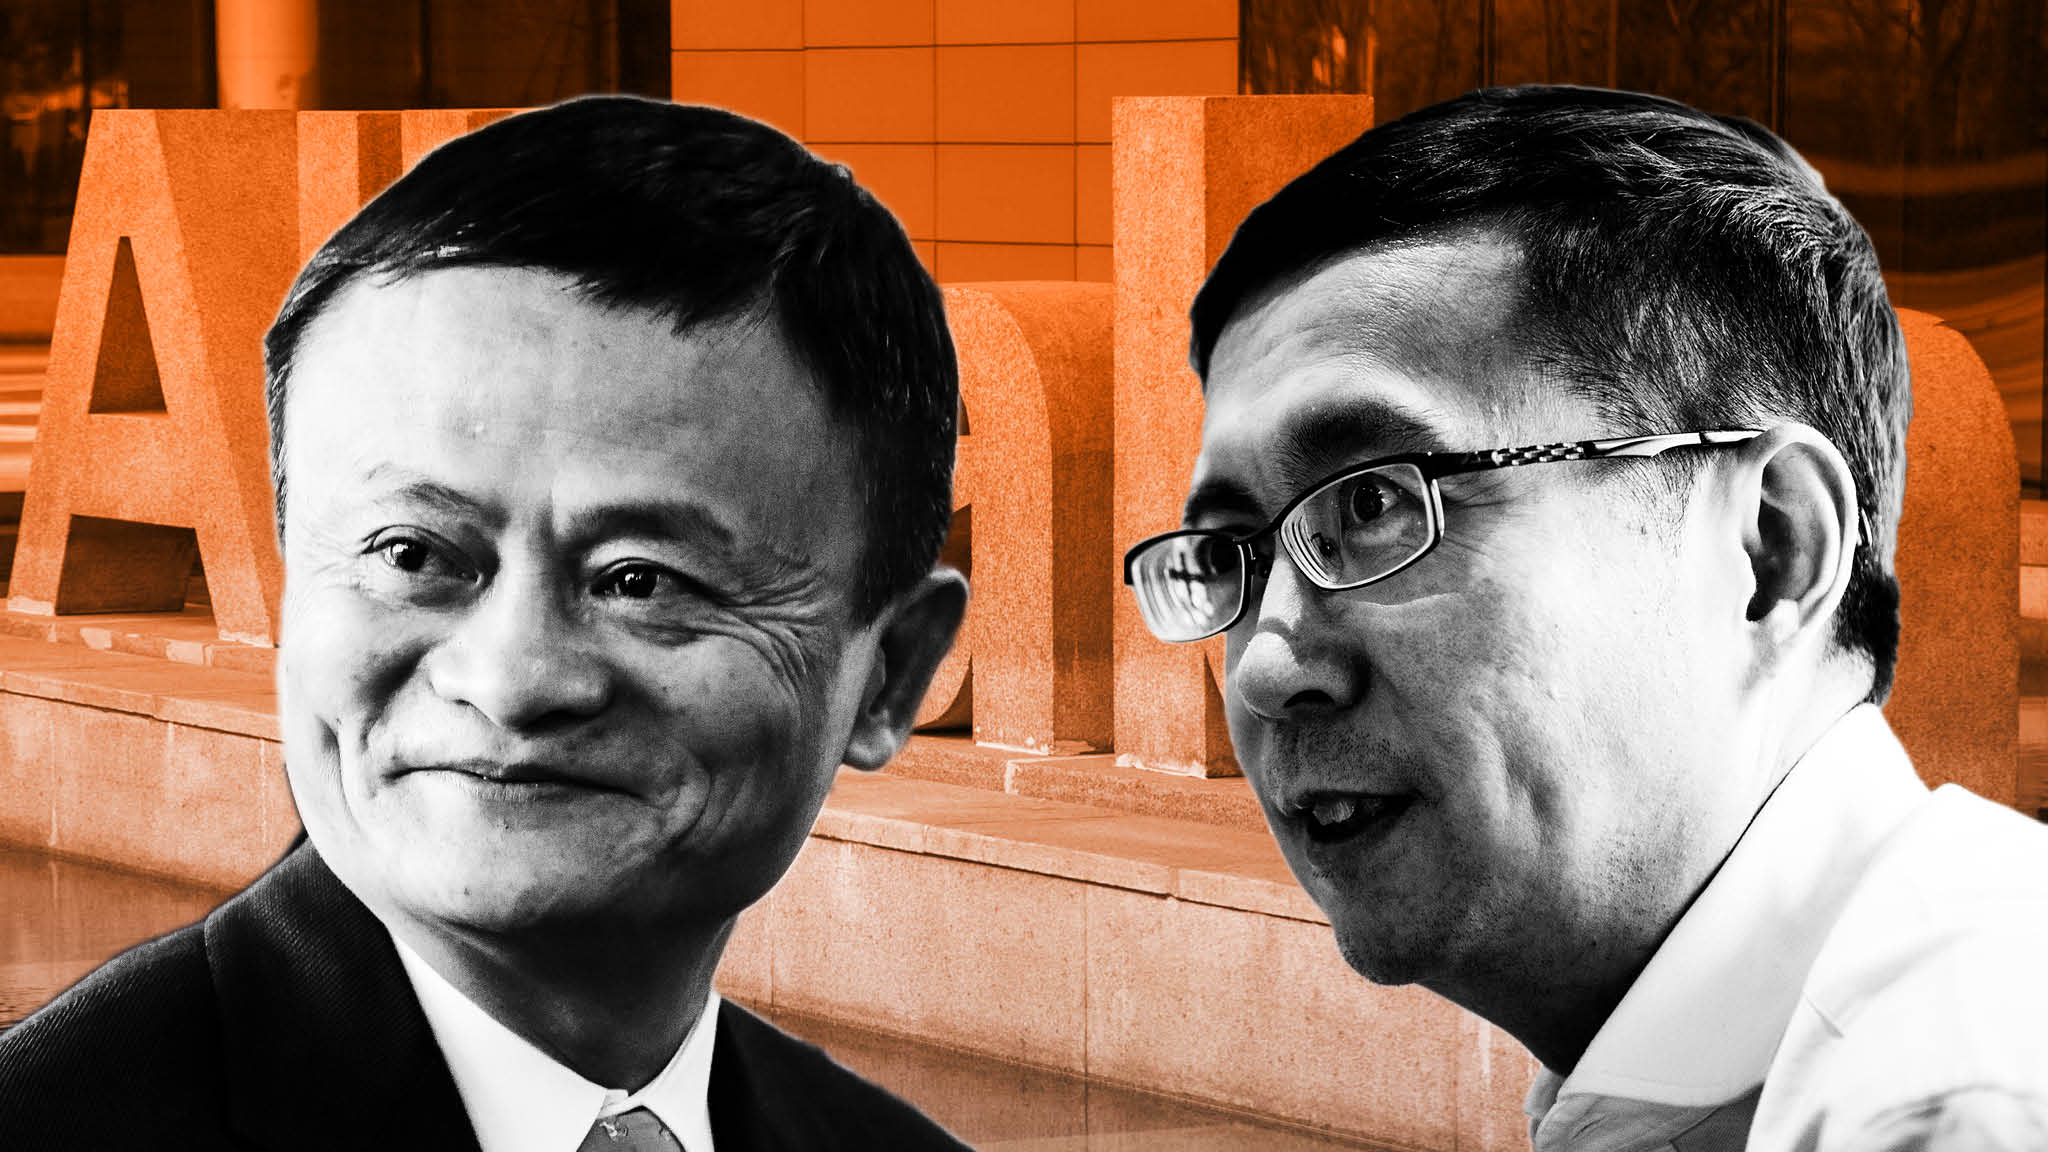 Teacher Jack Ma S New Course For Alibaba Financial Times